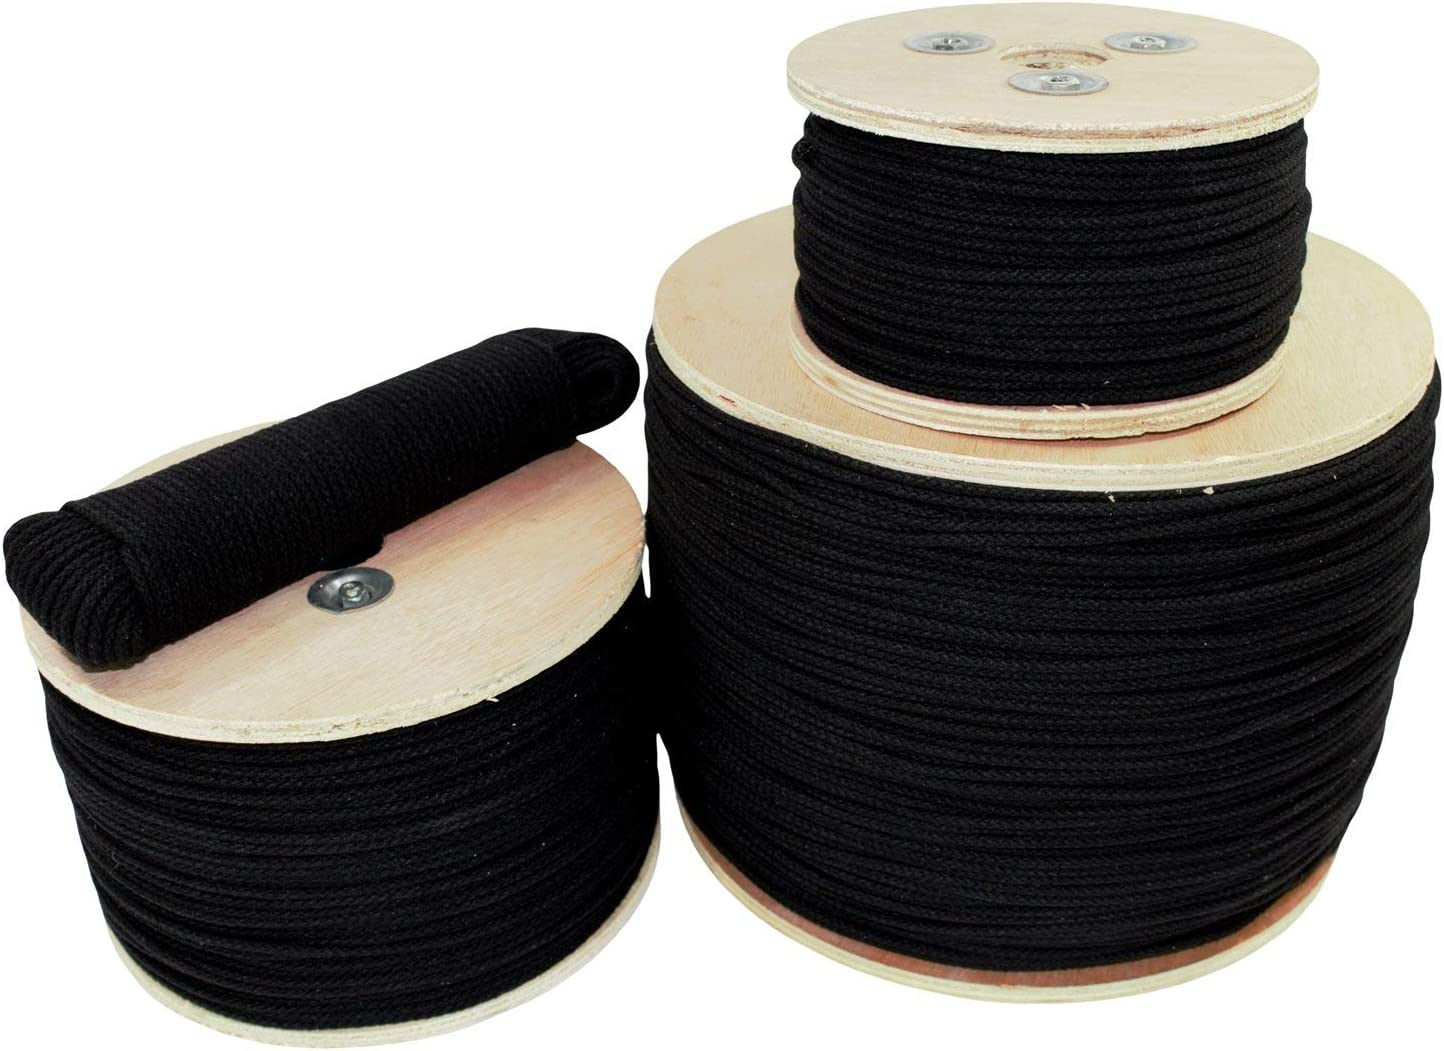 Golberg Trick Line Unglazed Cable Management Cotton Tie Line Decor Commercial Uses Theatrical Projects 1//8-Inch 250 Feet - Black Multipurpose Utility Line Polyester Core